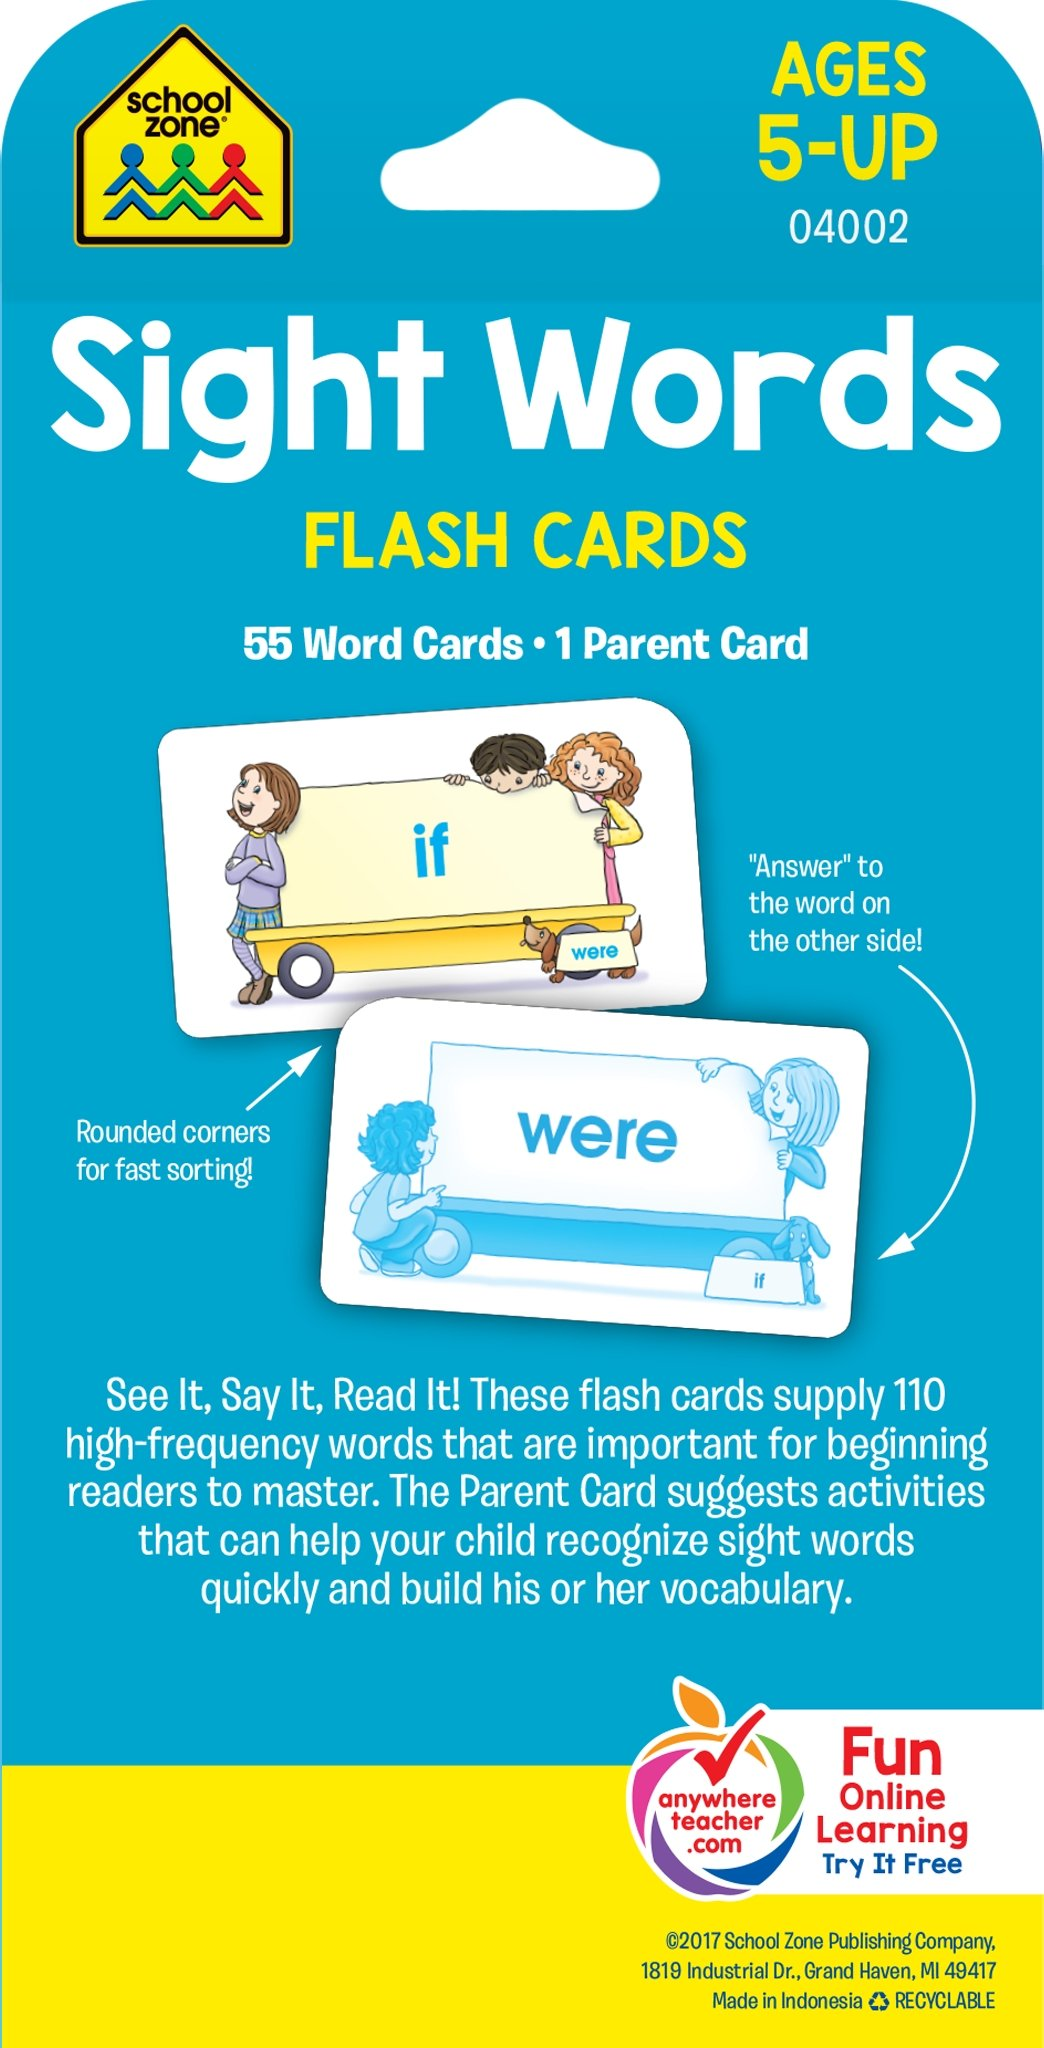 school zone sight words flash cards ages 5 and up early reading sight reading sight words and more 0689752835650 amazoncom books